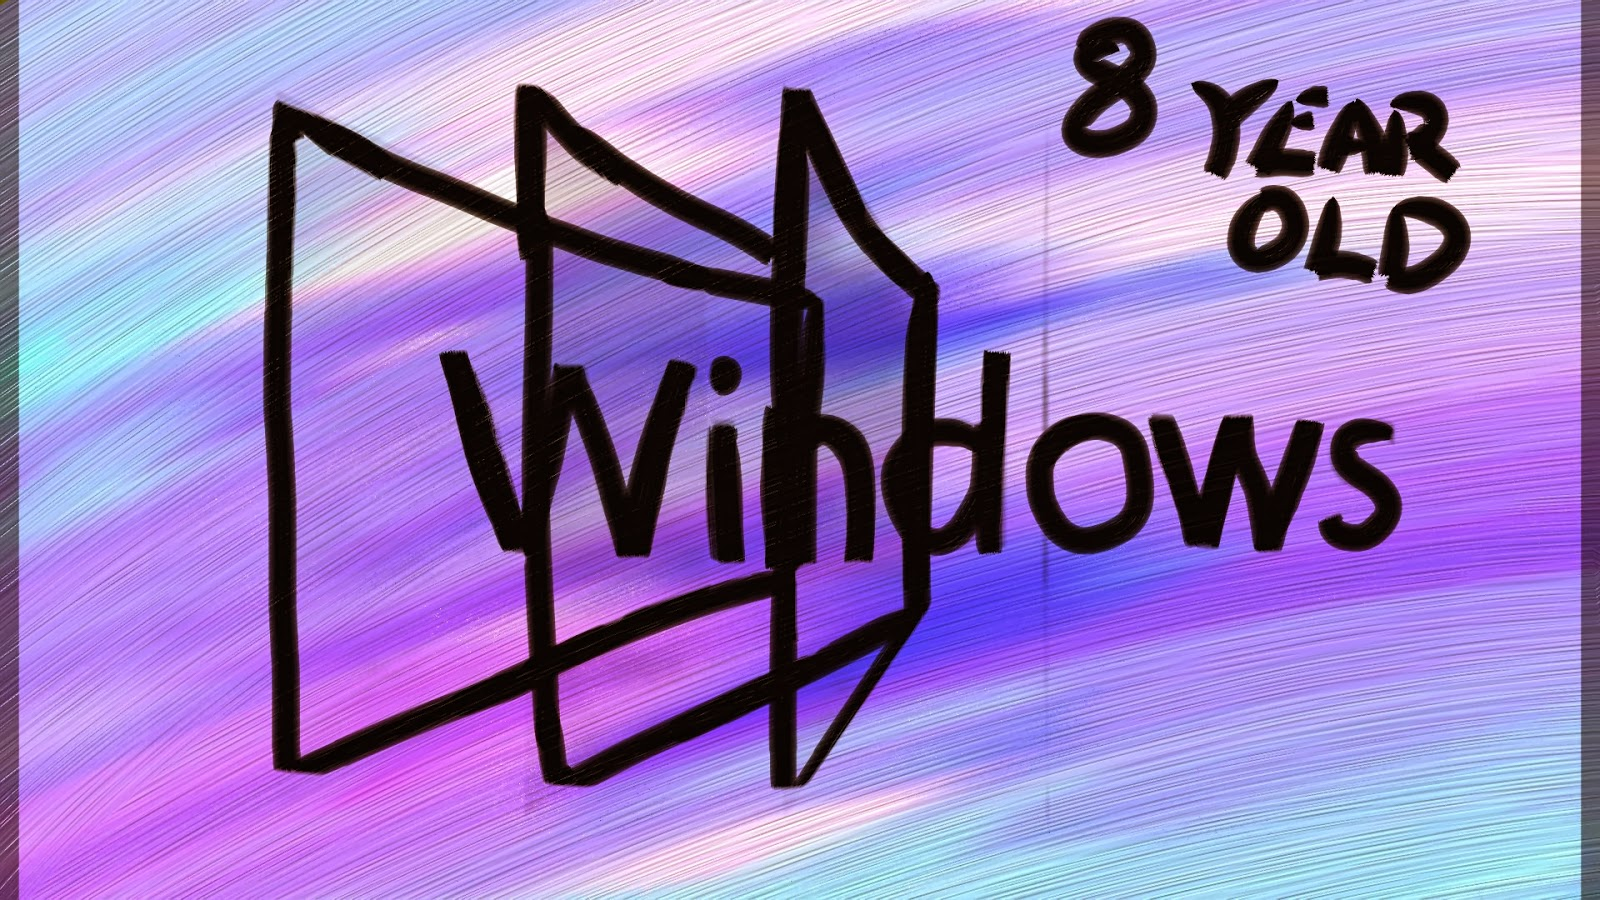 Windows 8 by an 8 Year Old Wallpaper Art